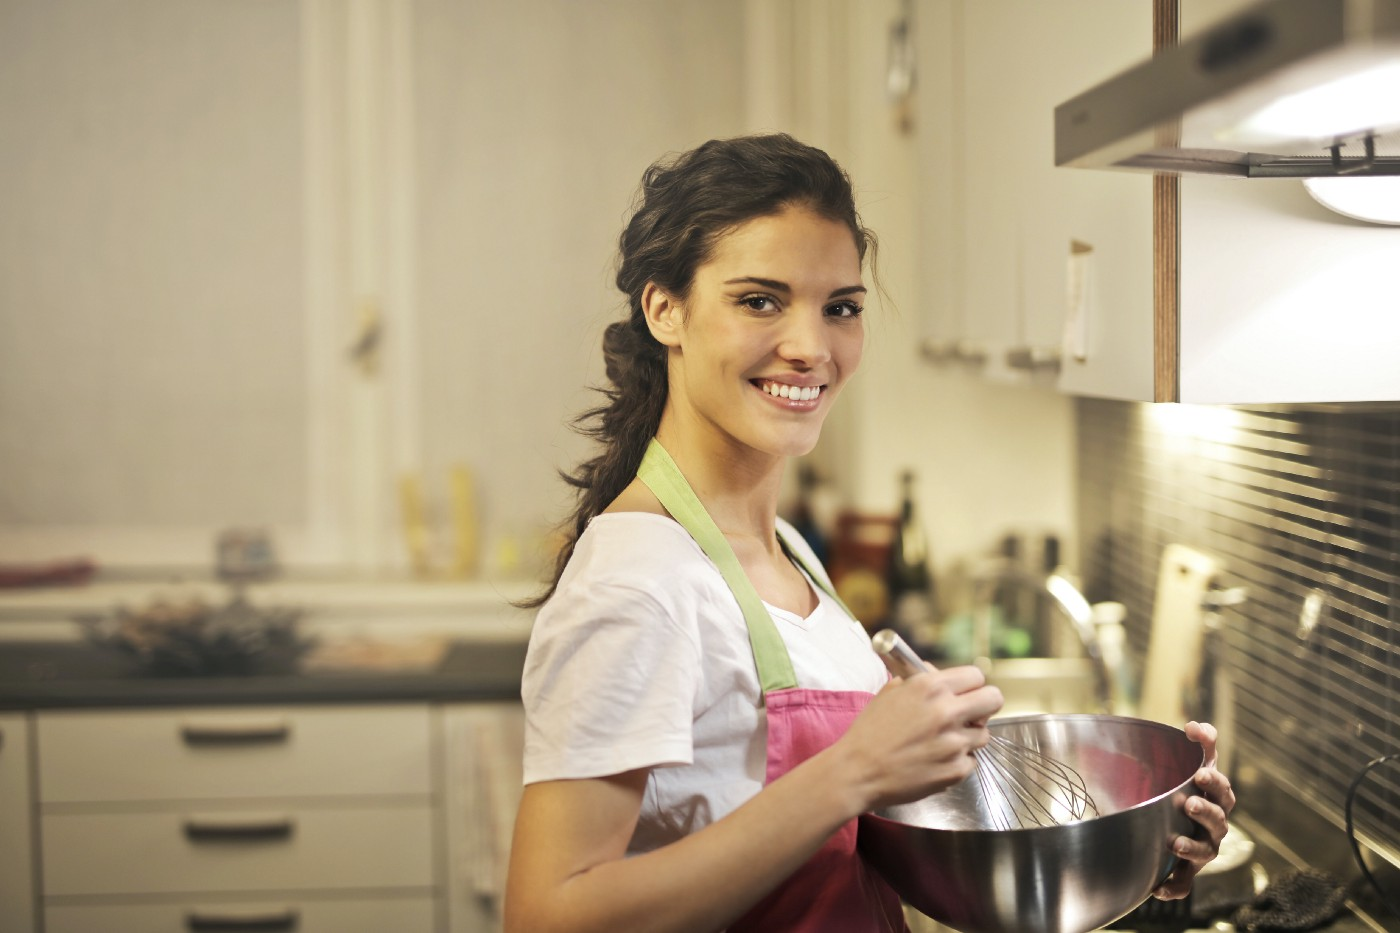 Woman in the kitchen holding a bowl and a whisk